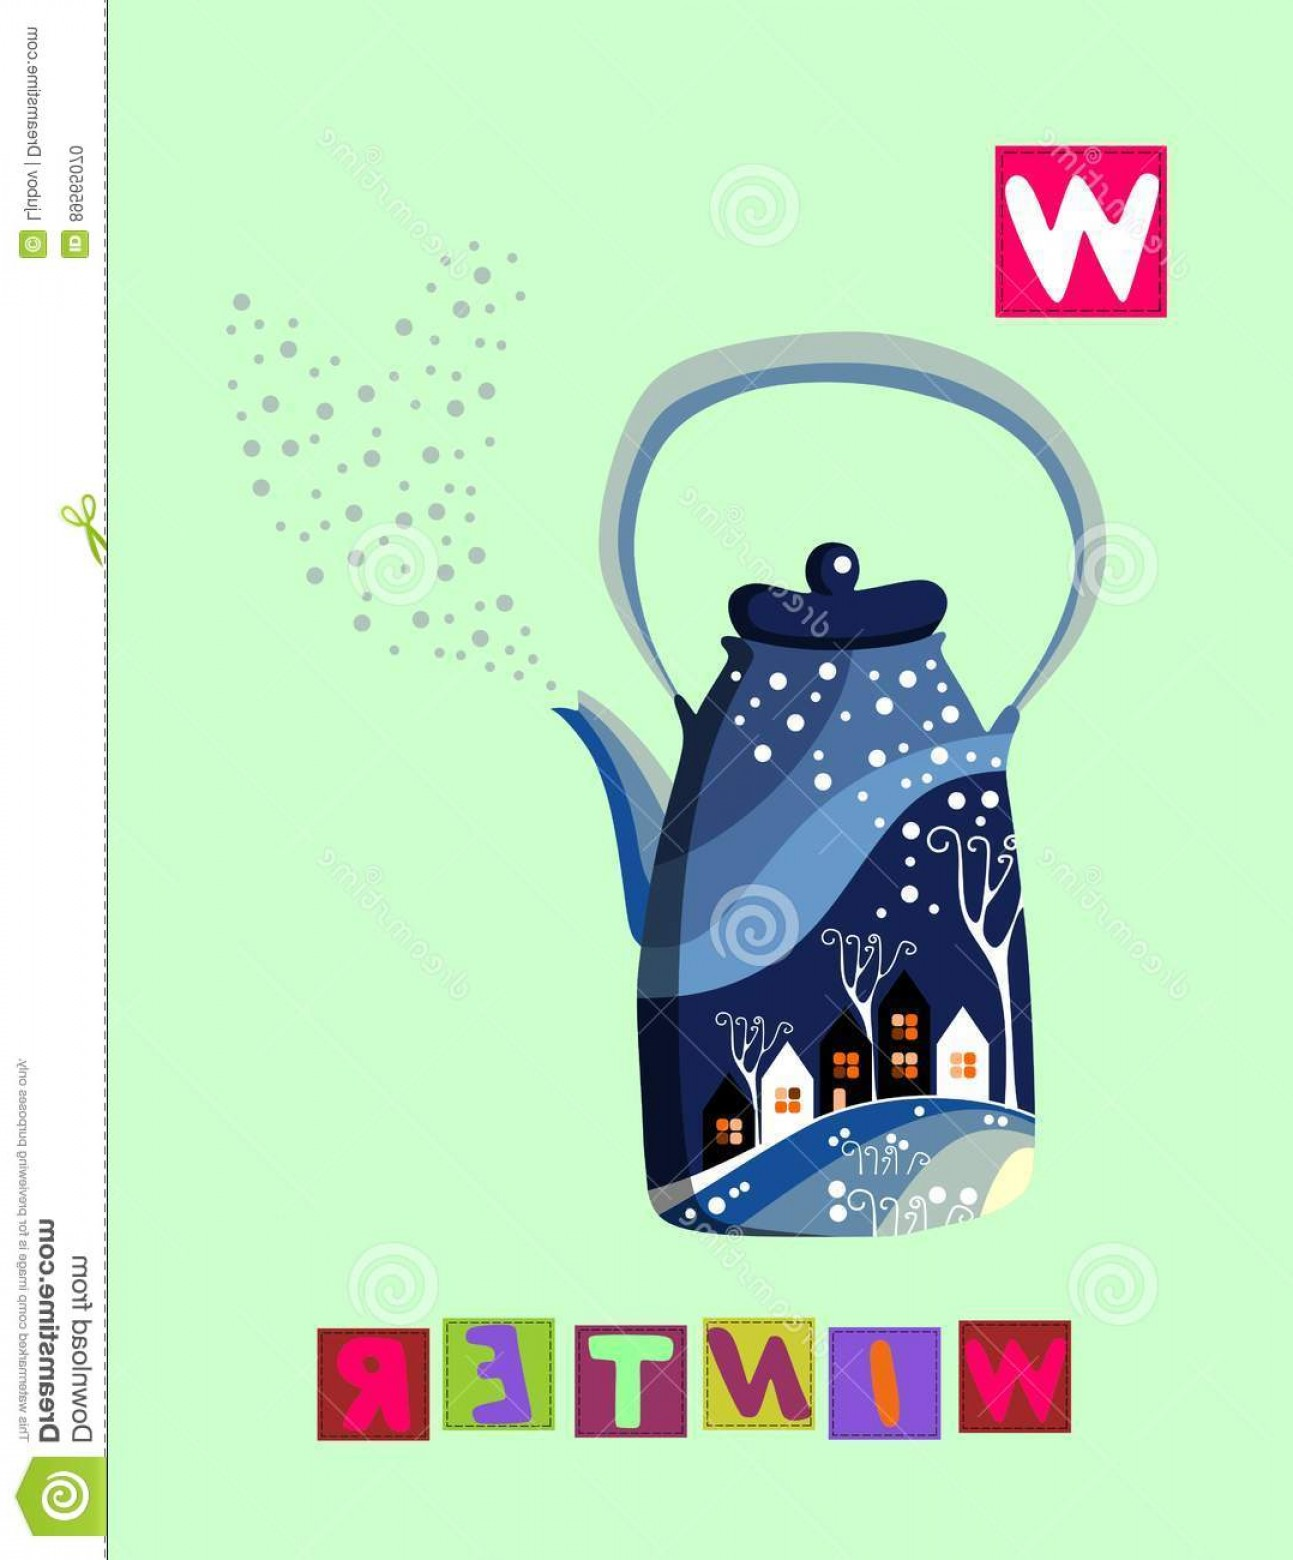 Vector ABC History: Stock Illustration Tea History Letter W Winter Cute Cartoon English Alphabet Colorful Image Word Kids Vector Abc White Background Image